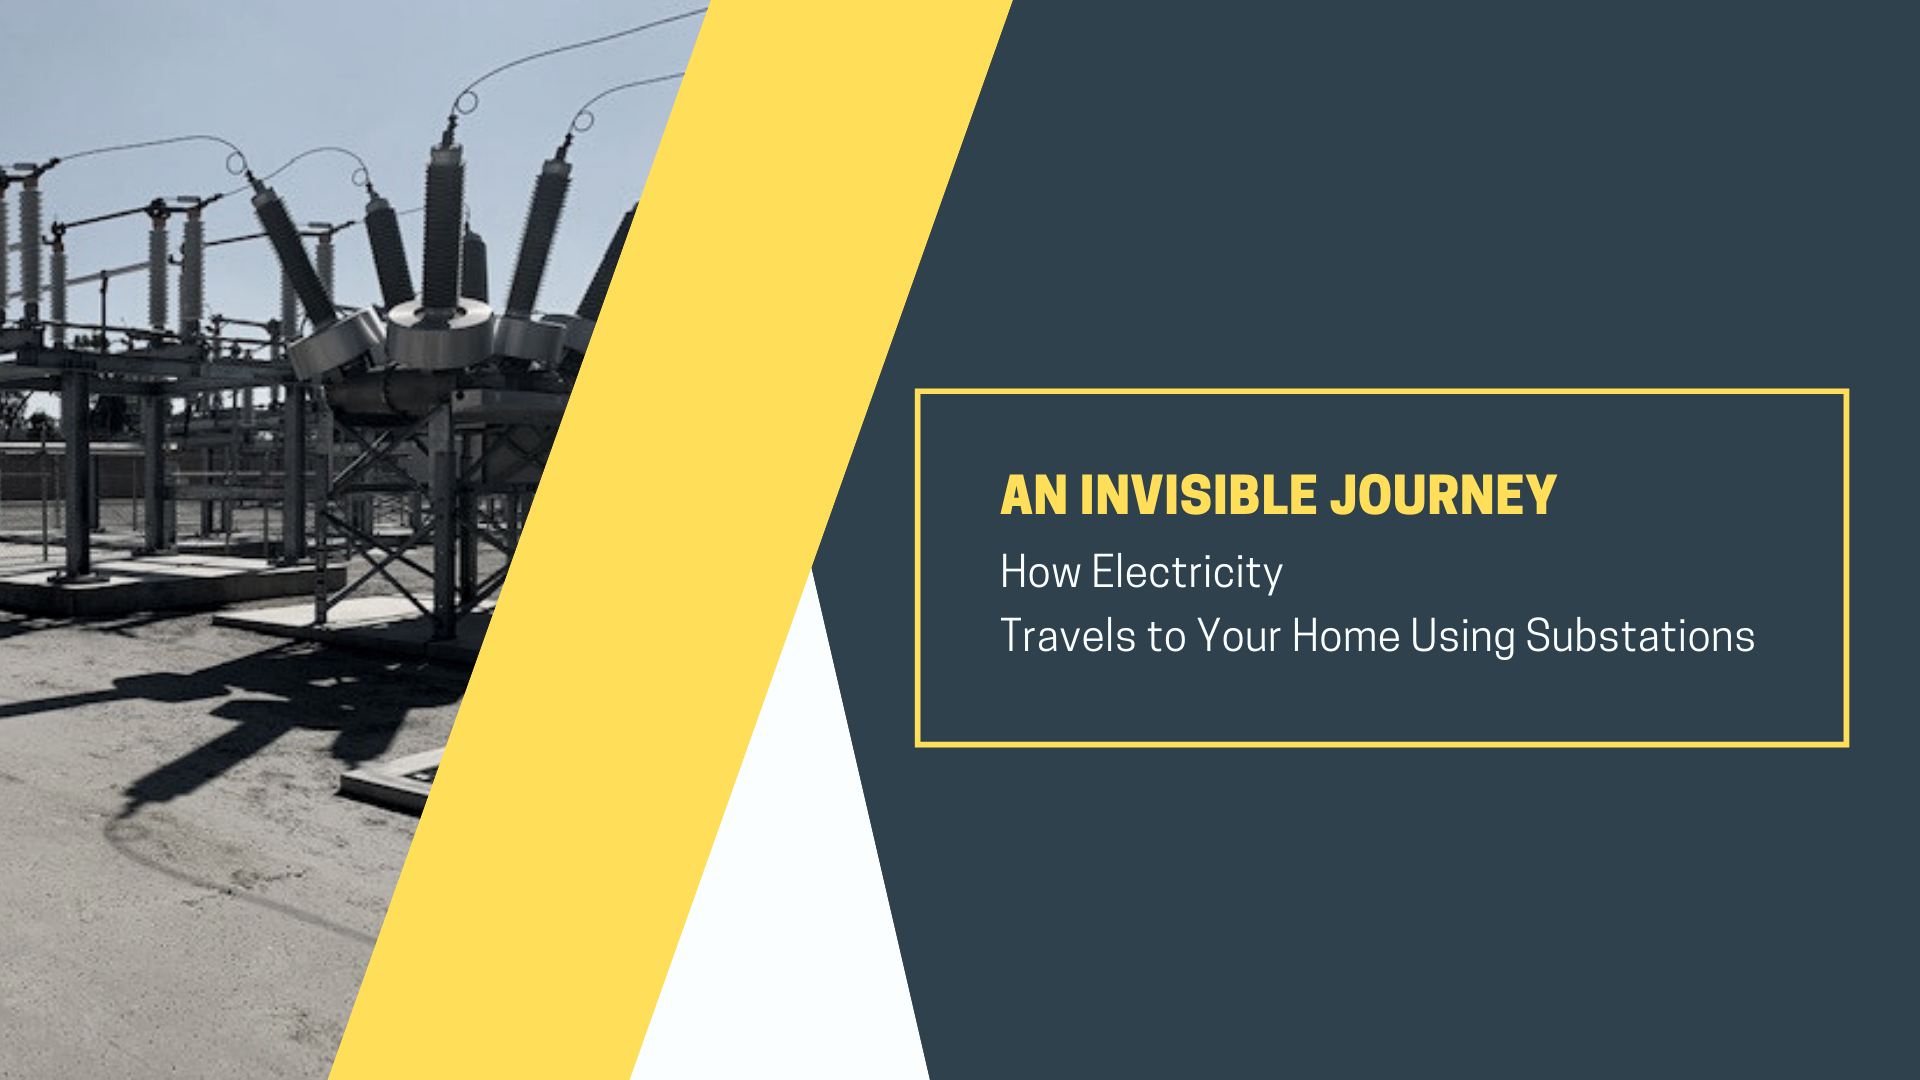 An Invisible Journey: How Electricity Travels to Your Home Using Substations